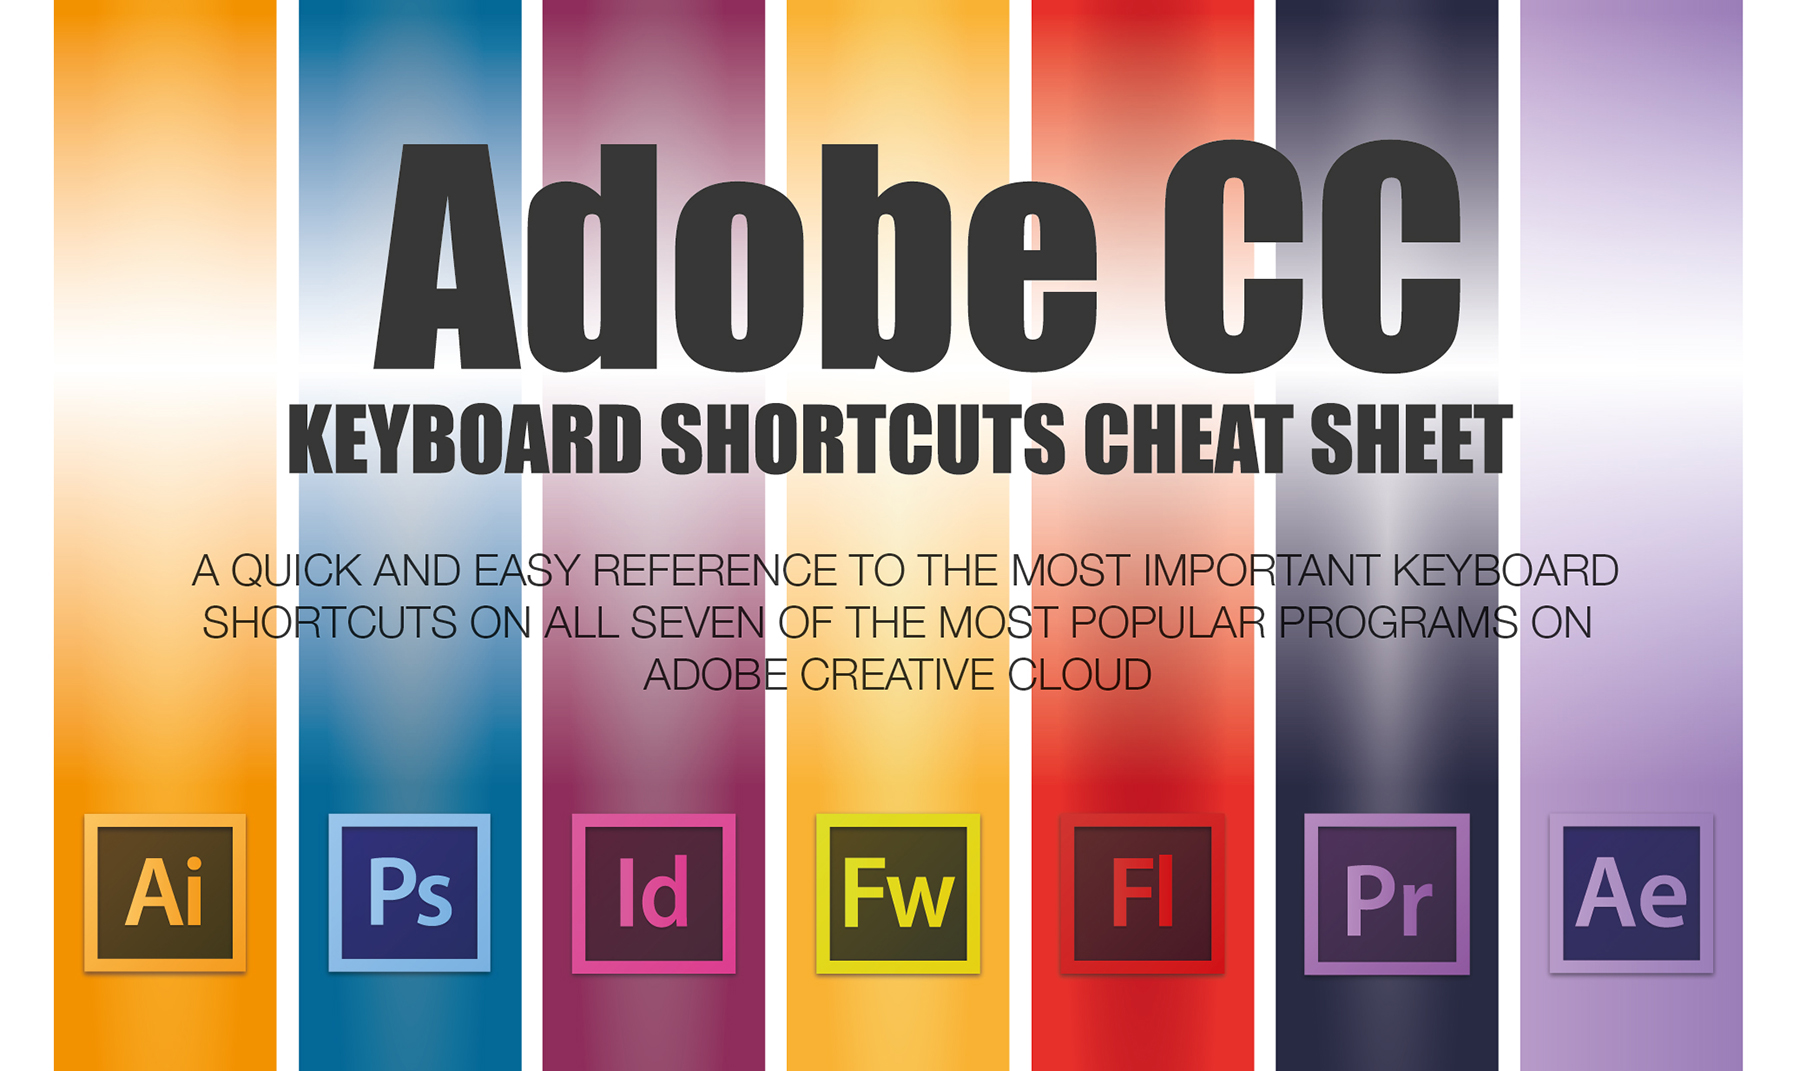 The Ultimate Adobe Creative Cloud Keyboard Shortcuts Cheat